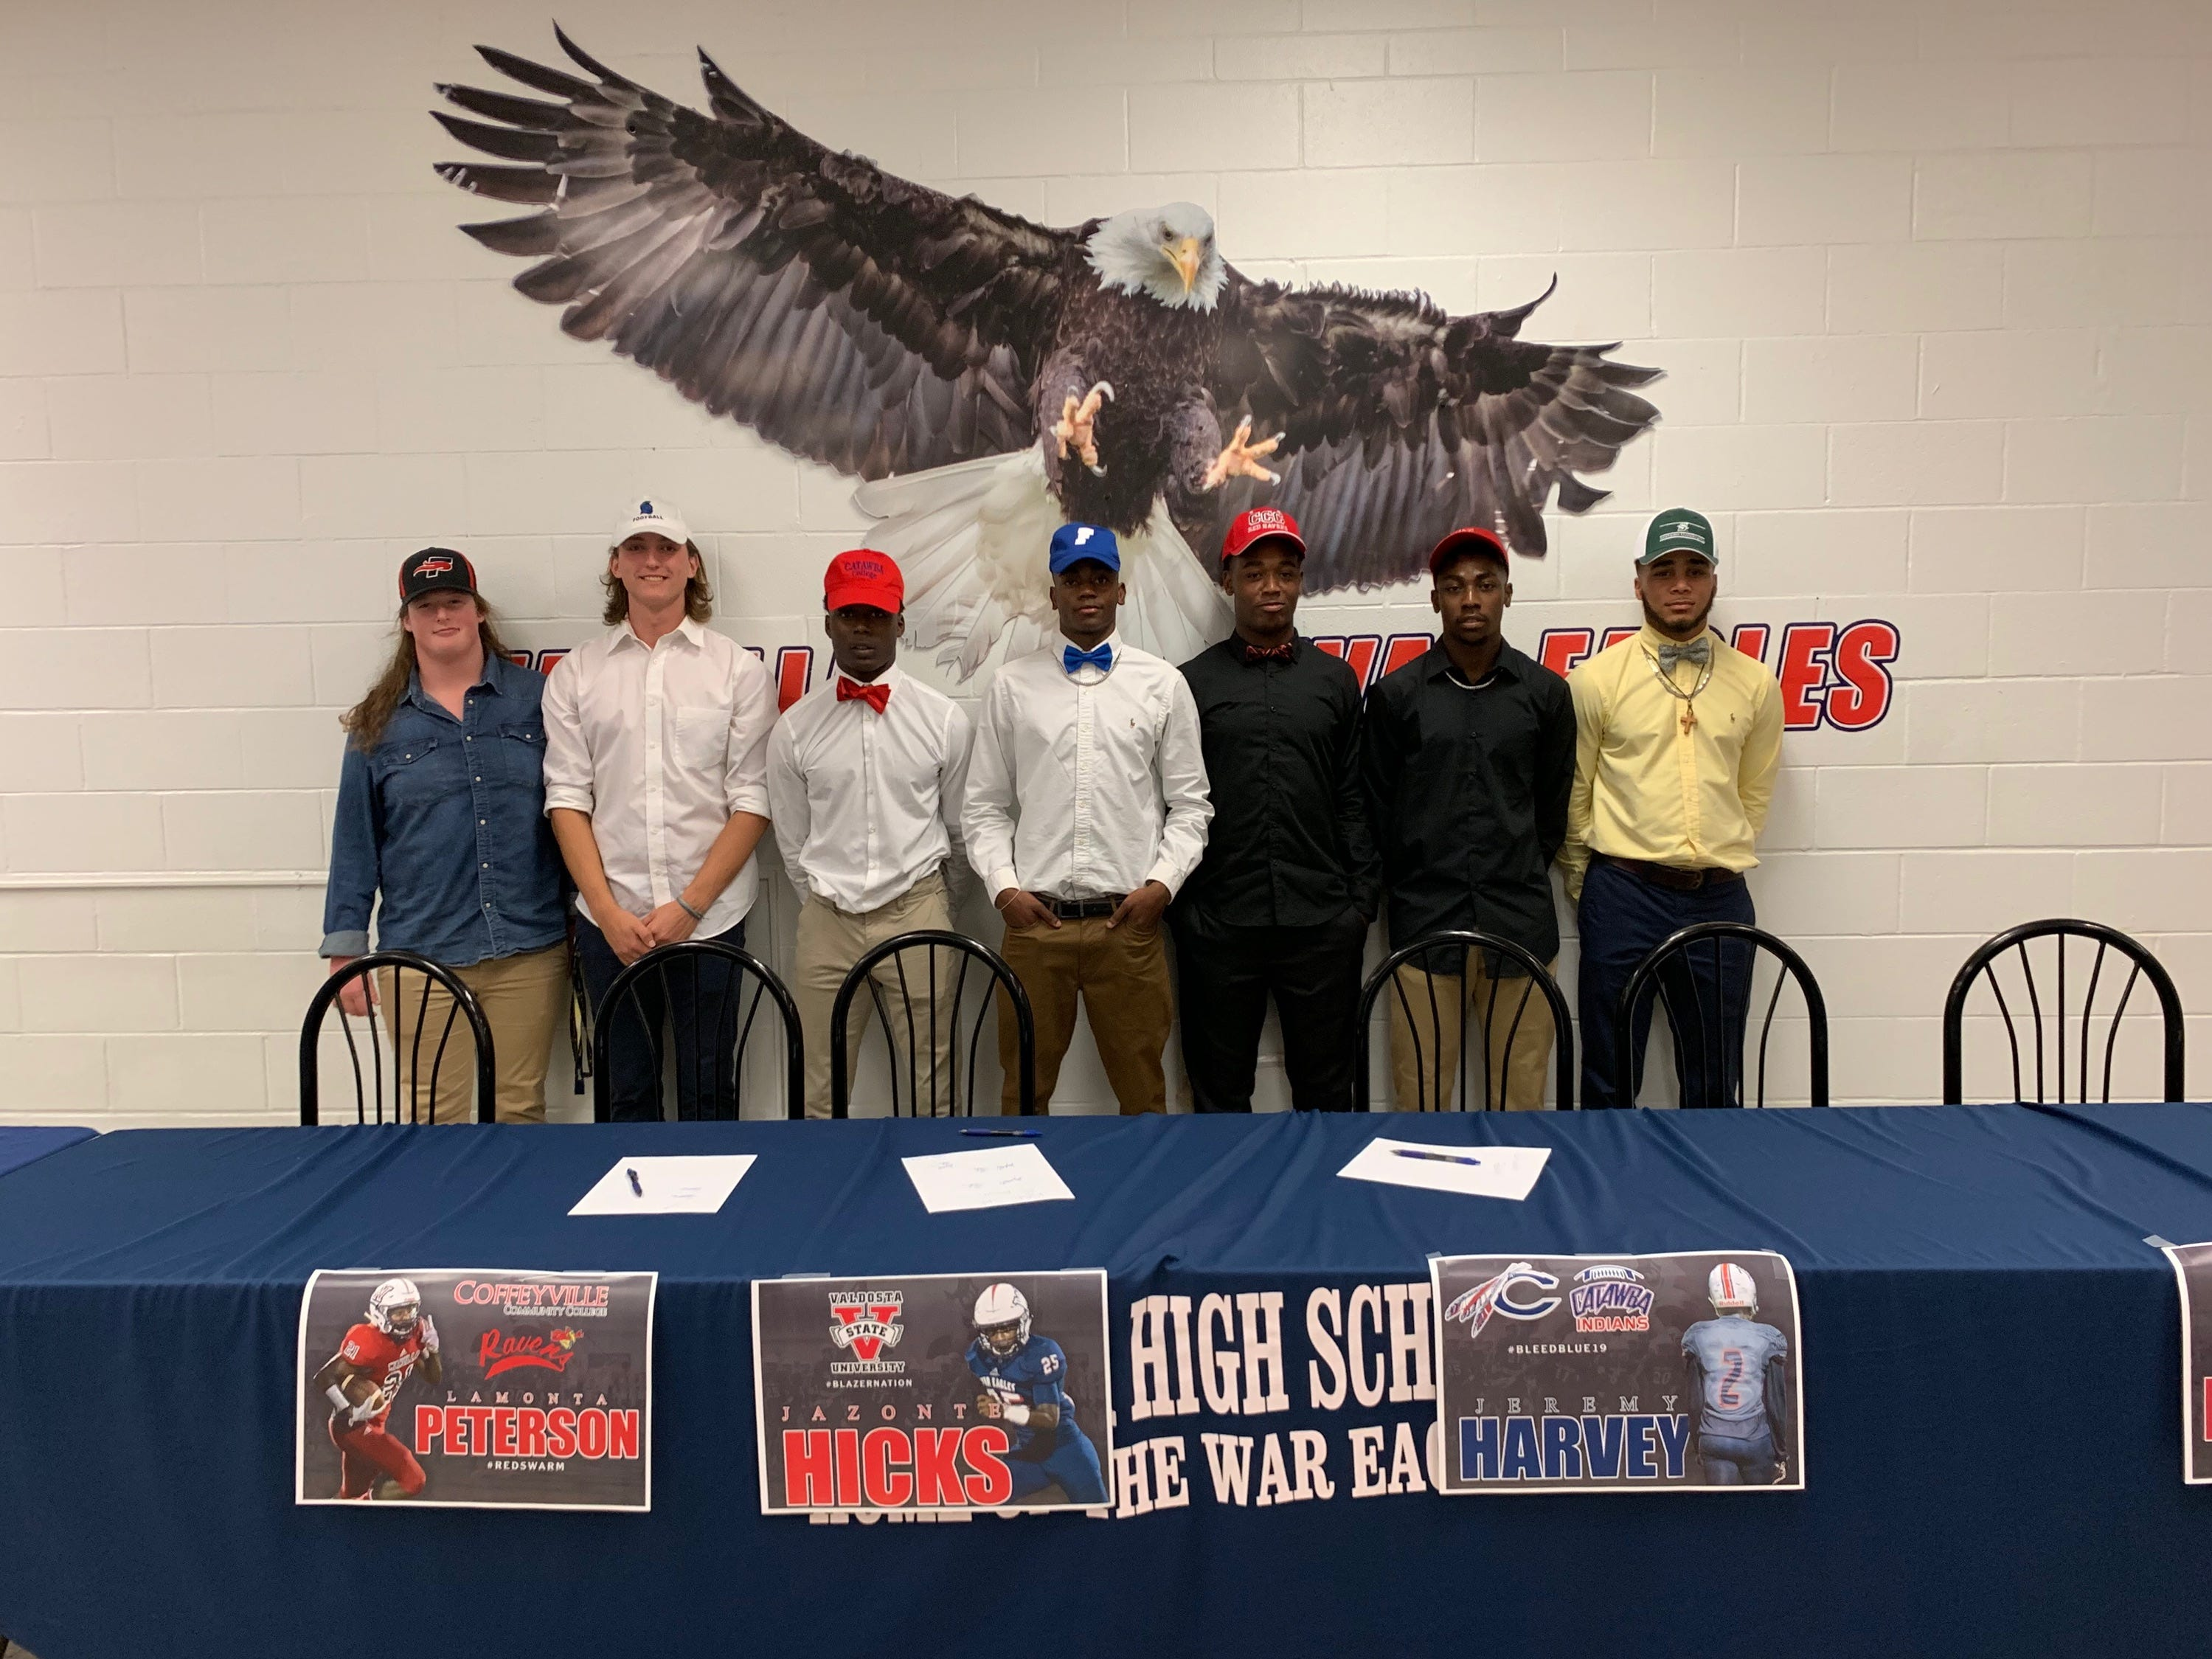 Wakulla had six football players sign during National Signing Day ceremonies on Feb. 6, 2019. Punter Hunter Busen with West Florida, Jeremy Harvey with Catawba University, receiver Malik Murray with Faulkner University, running back Lamonta Peterson with Coffeyville Community College, linebacker Jazonte Hicks with Valdosta State, defensive back Dorian Allen with Stetson.